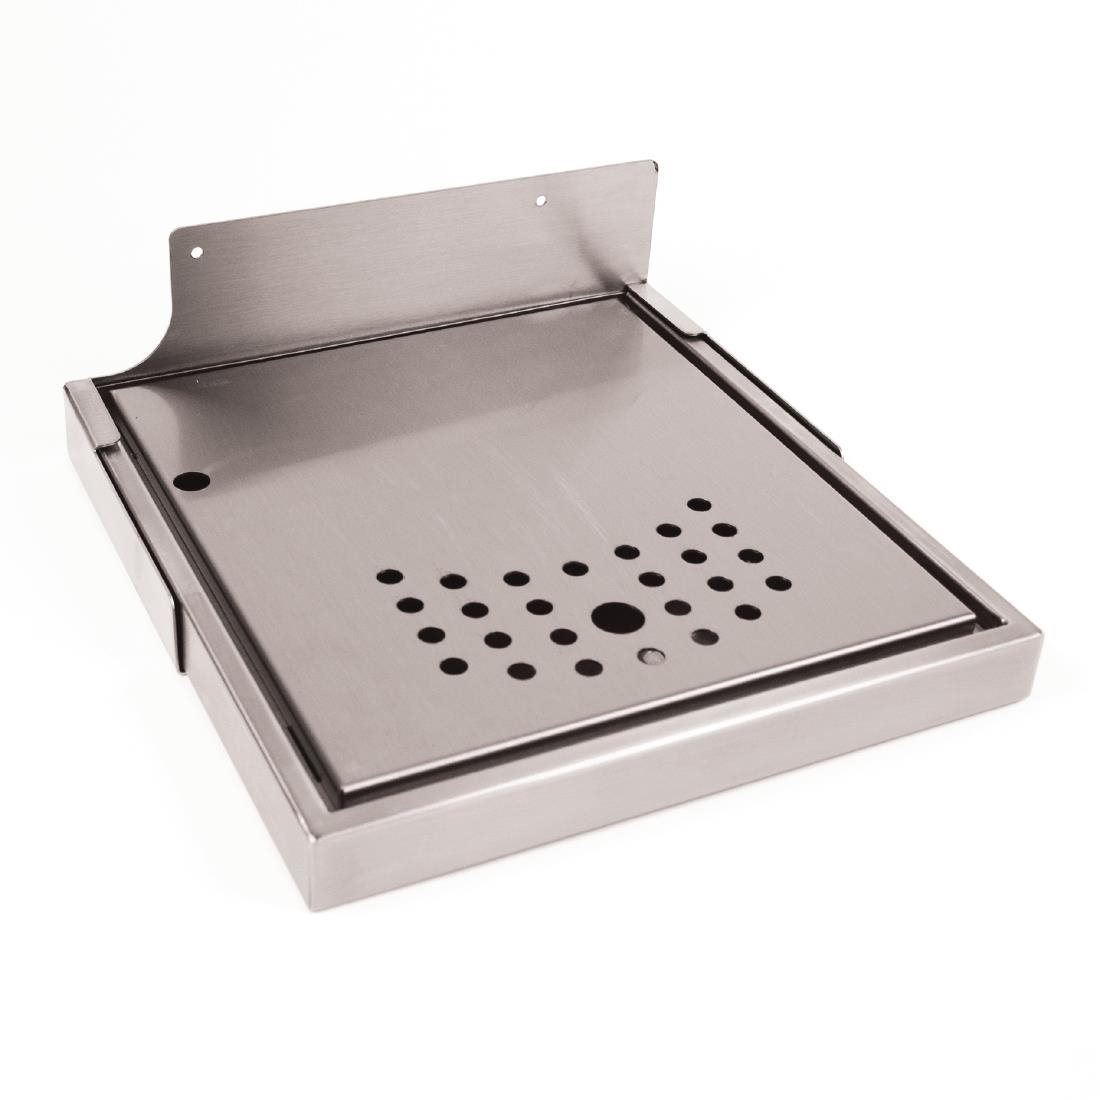 Image of Drip tray for M3F water boiler